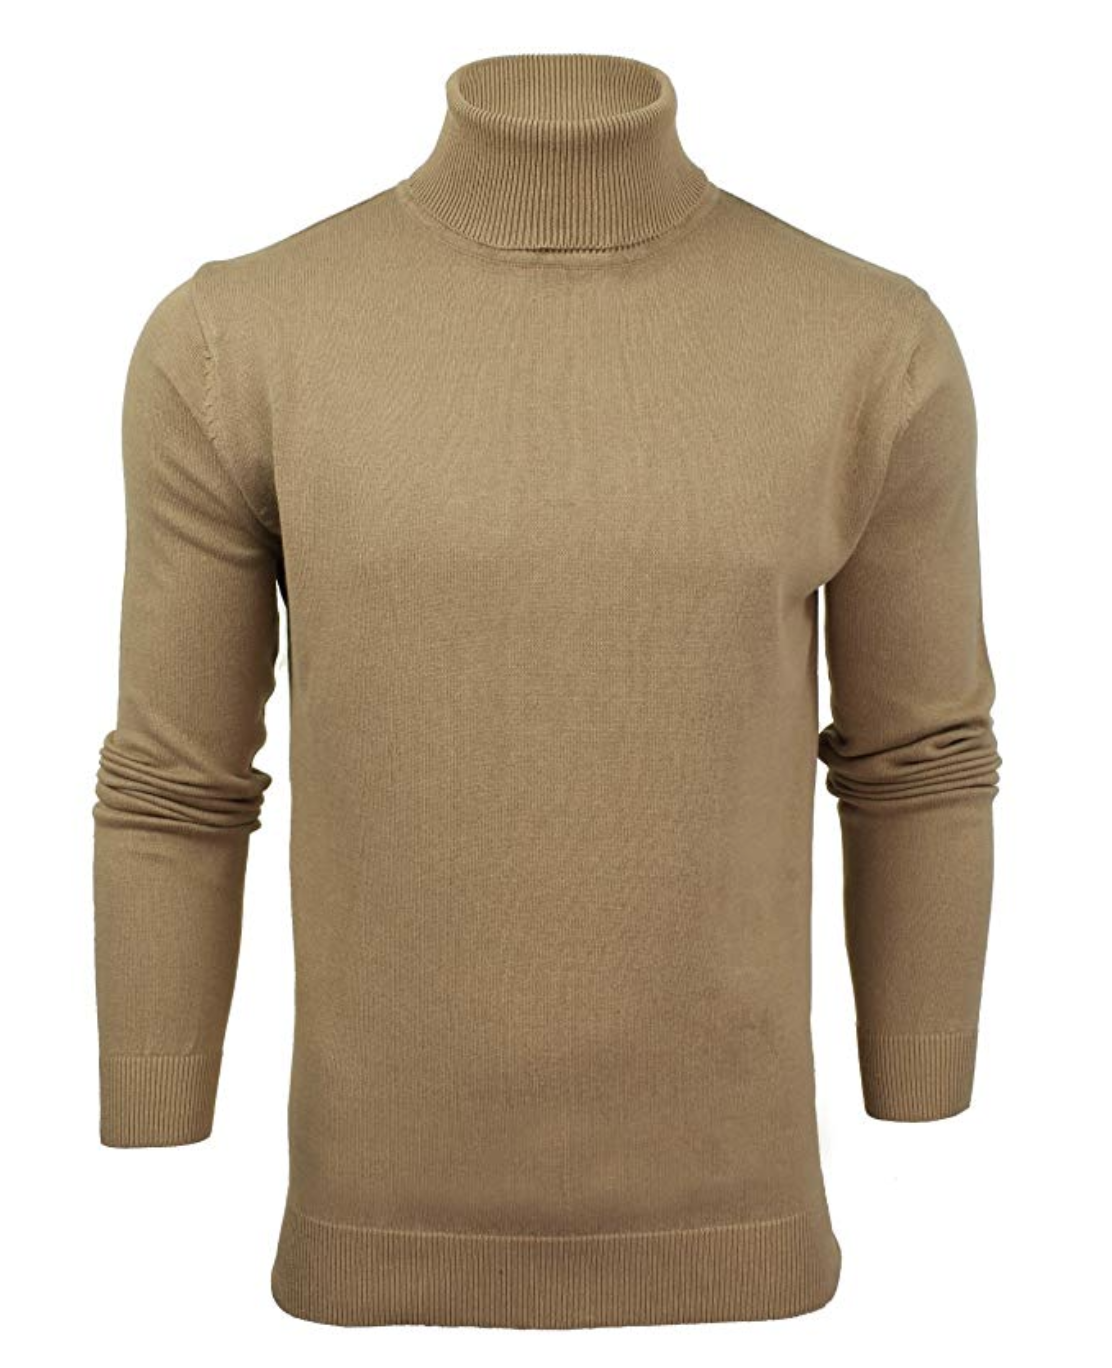 jersey cuello alto vuelto marron camel amazon